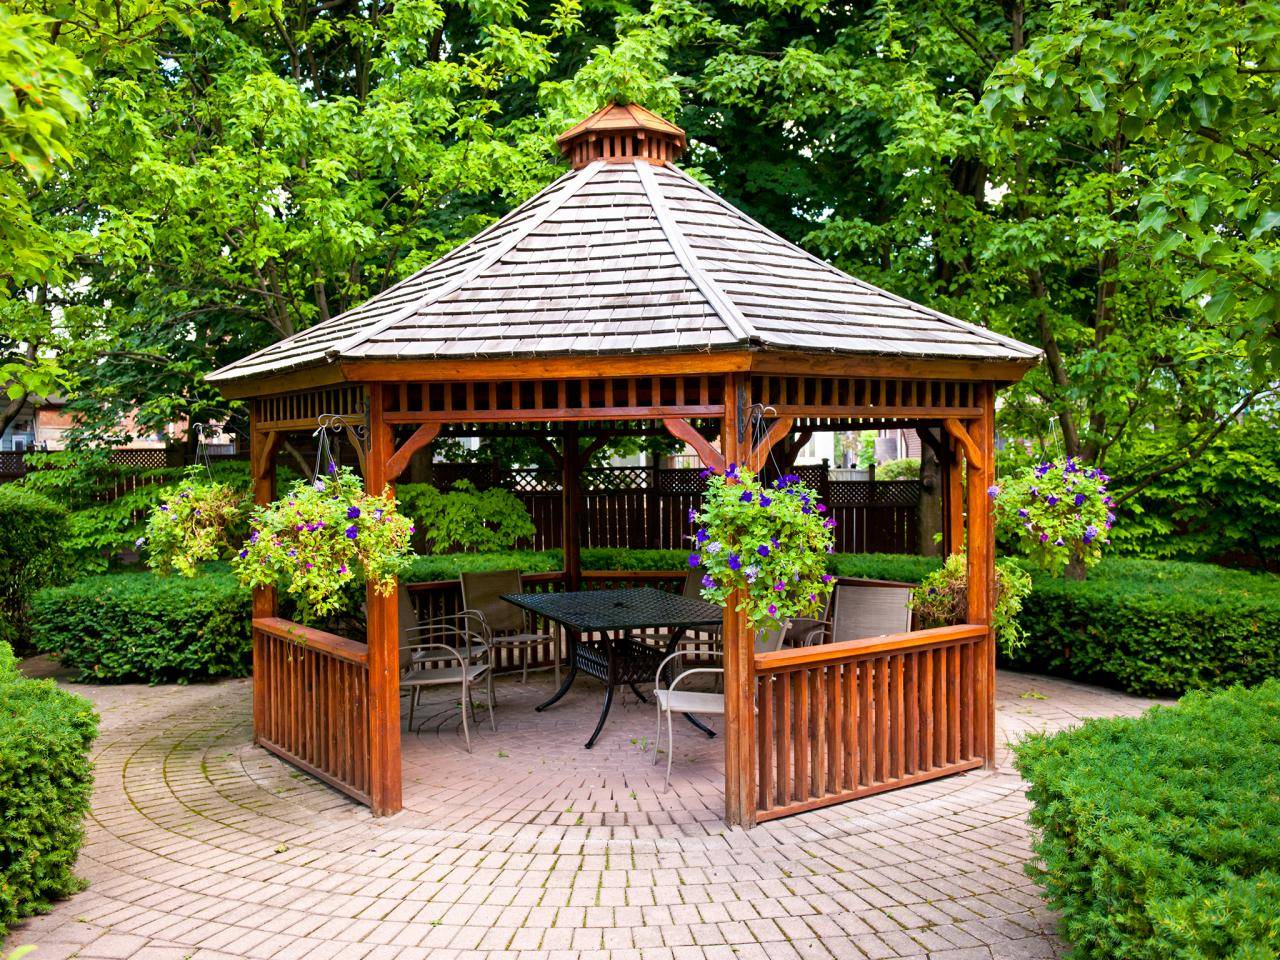 Patio gazebos hgtv for Average cost to build a pavilion